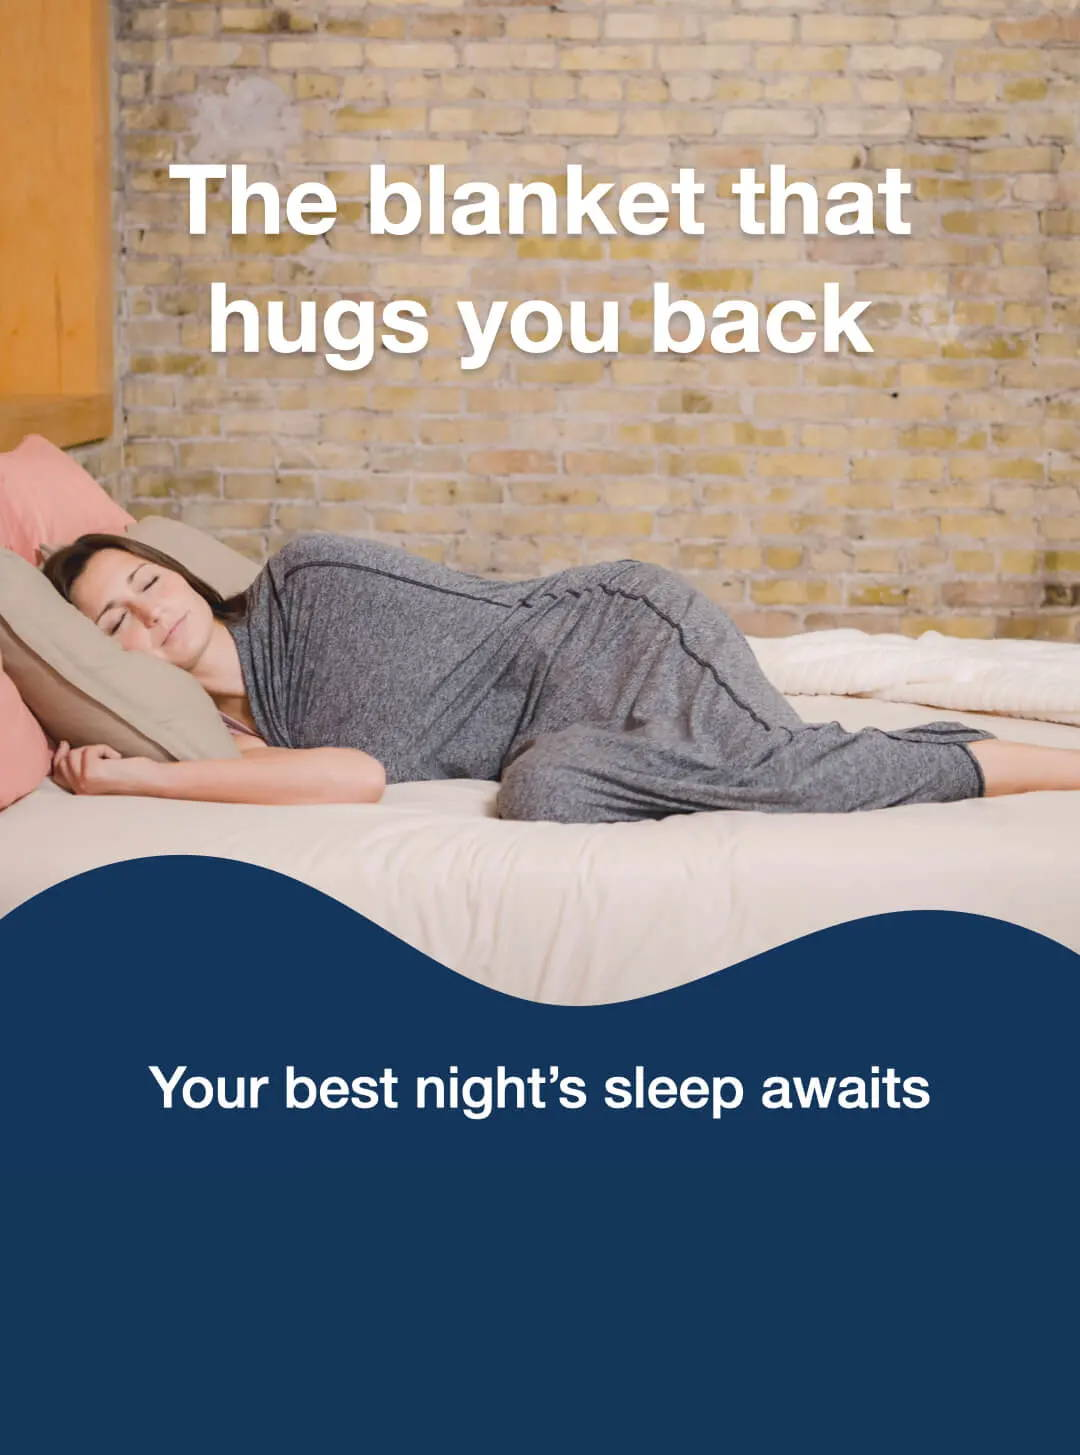 The blanket that hugs you back. Your best night's sleep awaits - woman in sleep Pod in bed